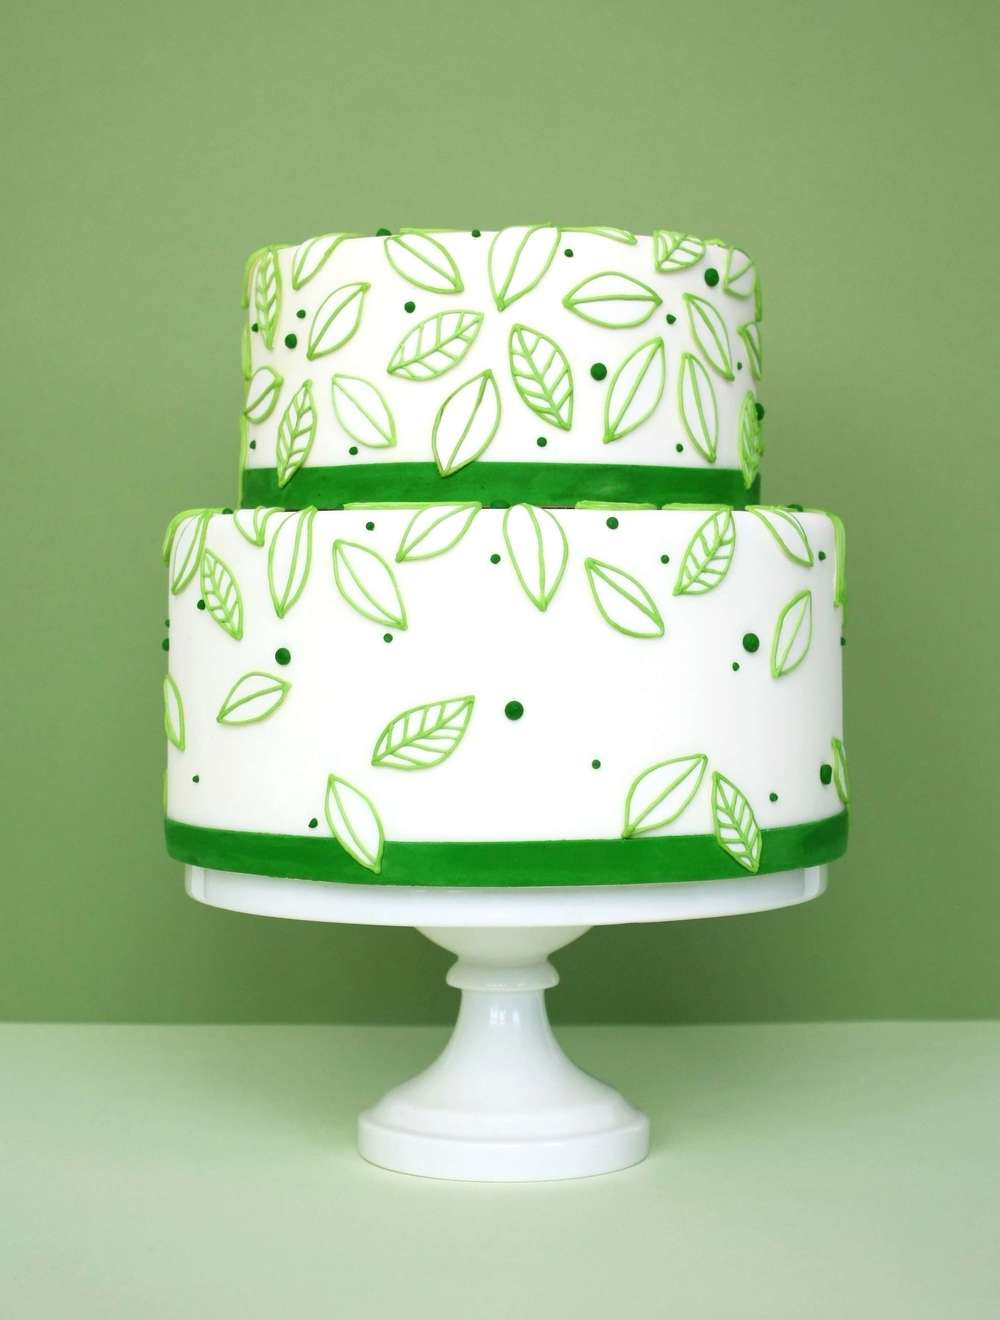 eatcakebemerry_modern_leaves_cake.jpg